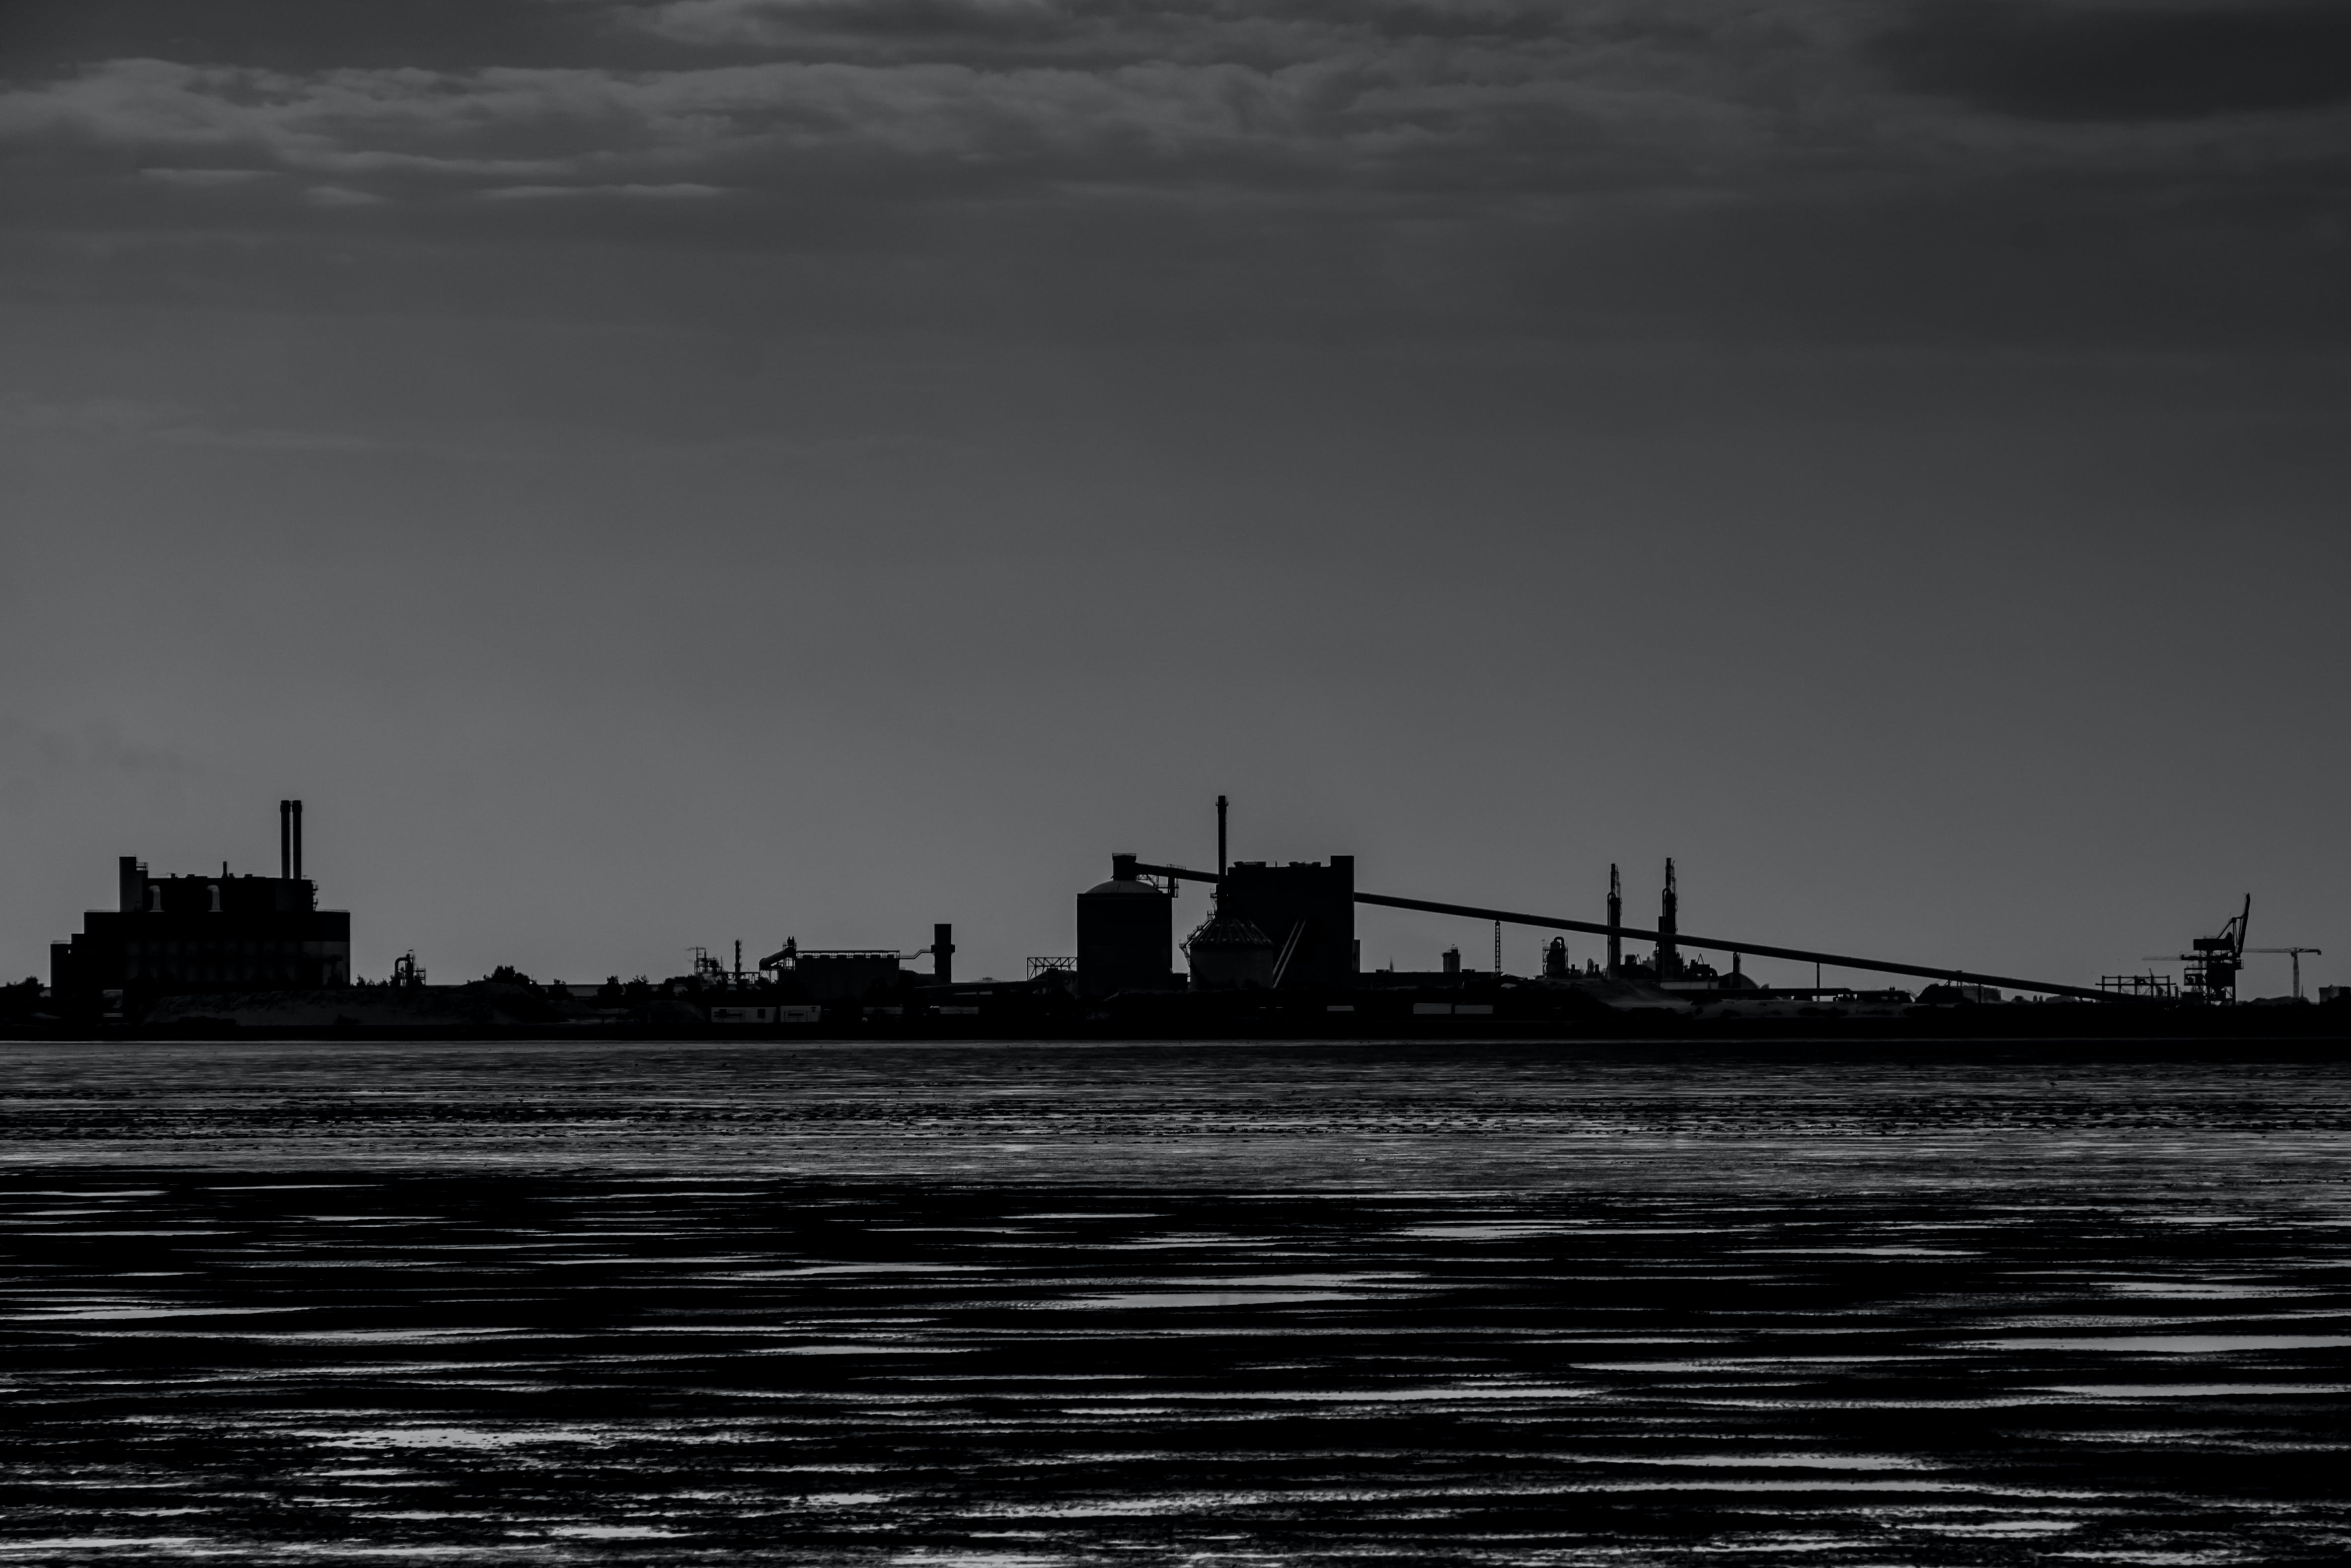 Silhouette Photo of Ship on Body of Water